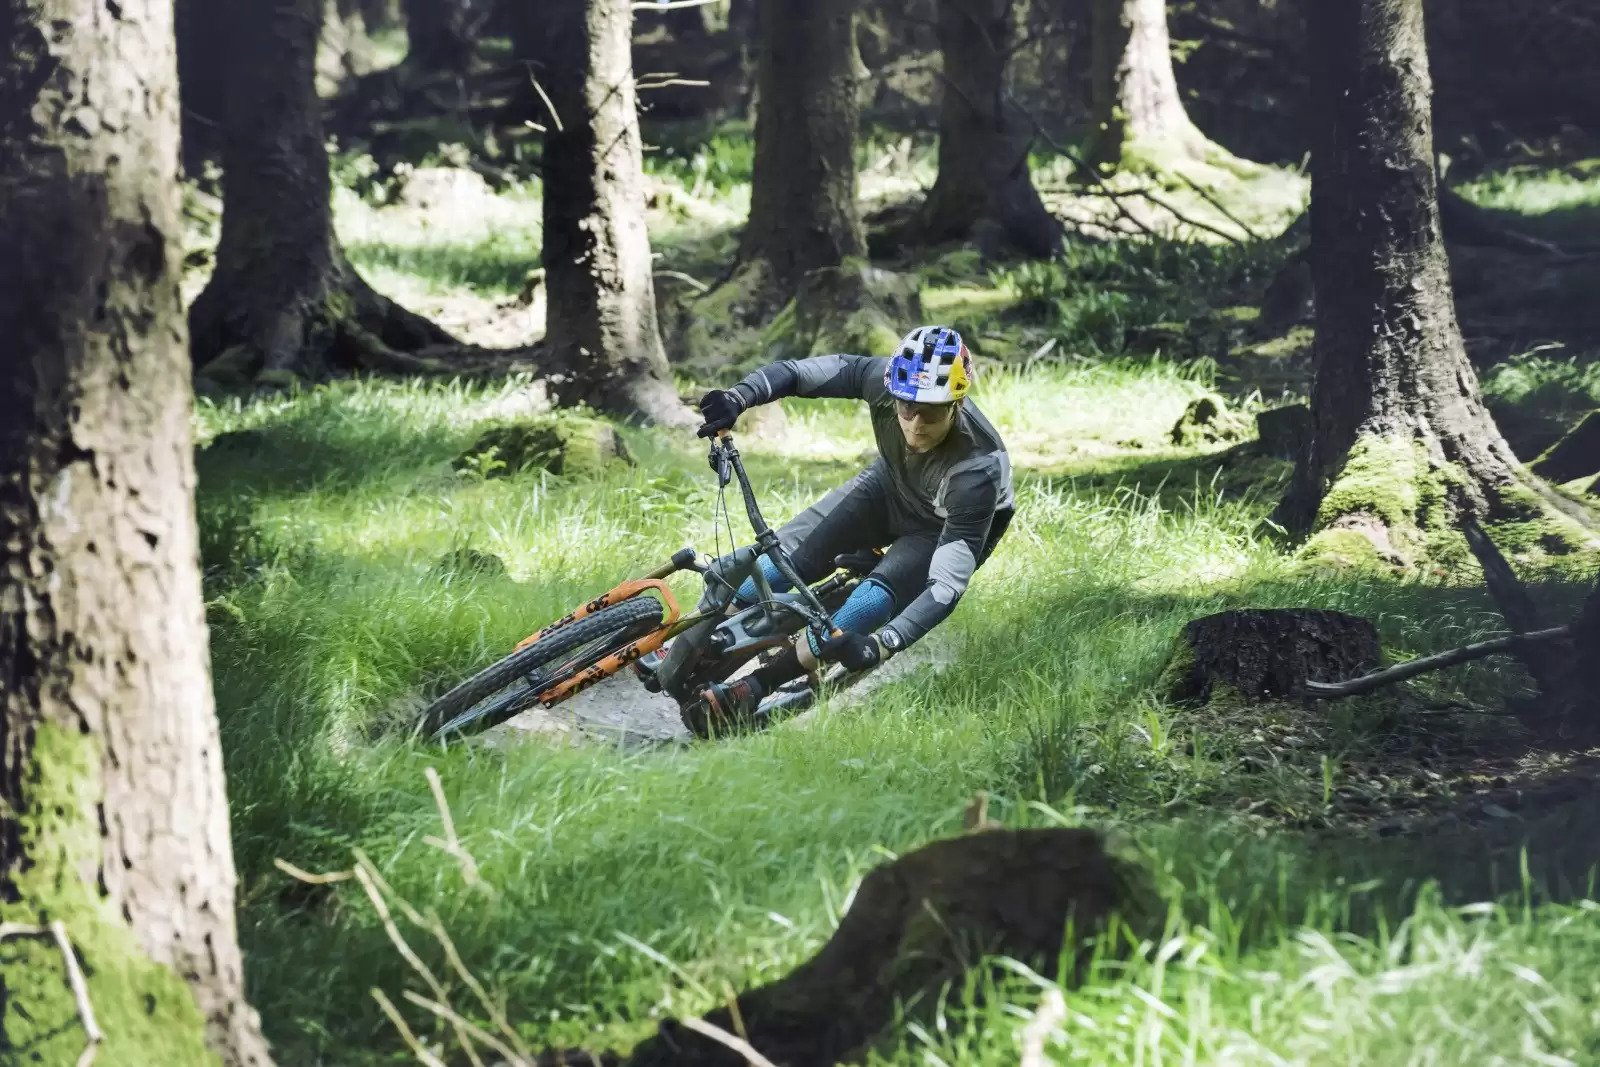 Mountainbike til Sport | Køb Mountain Bike Online| Jupiter ekstra